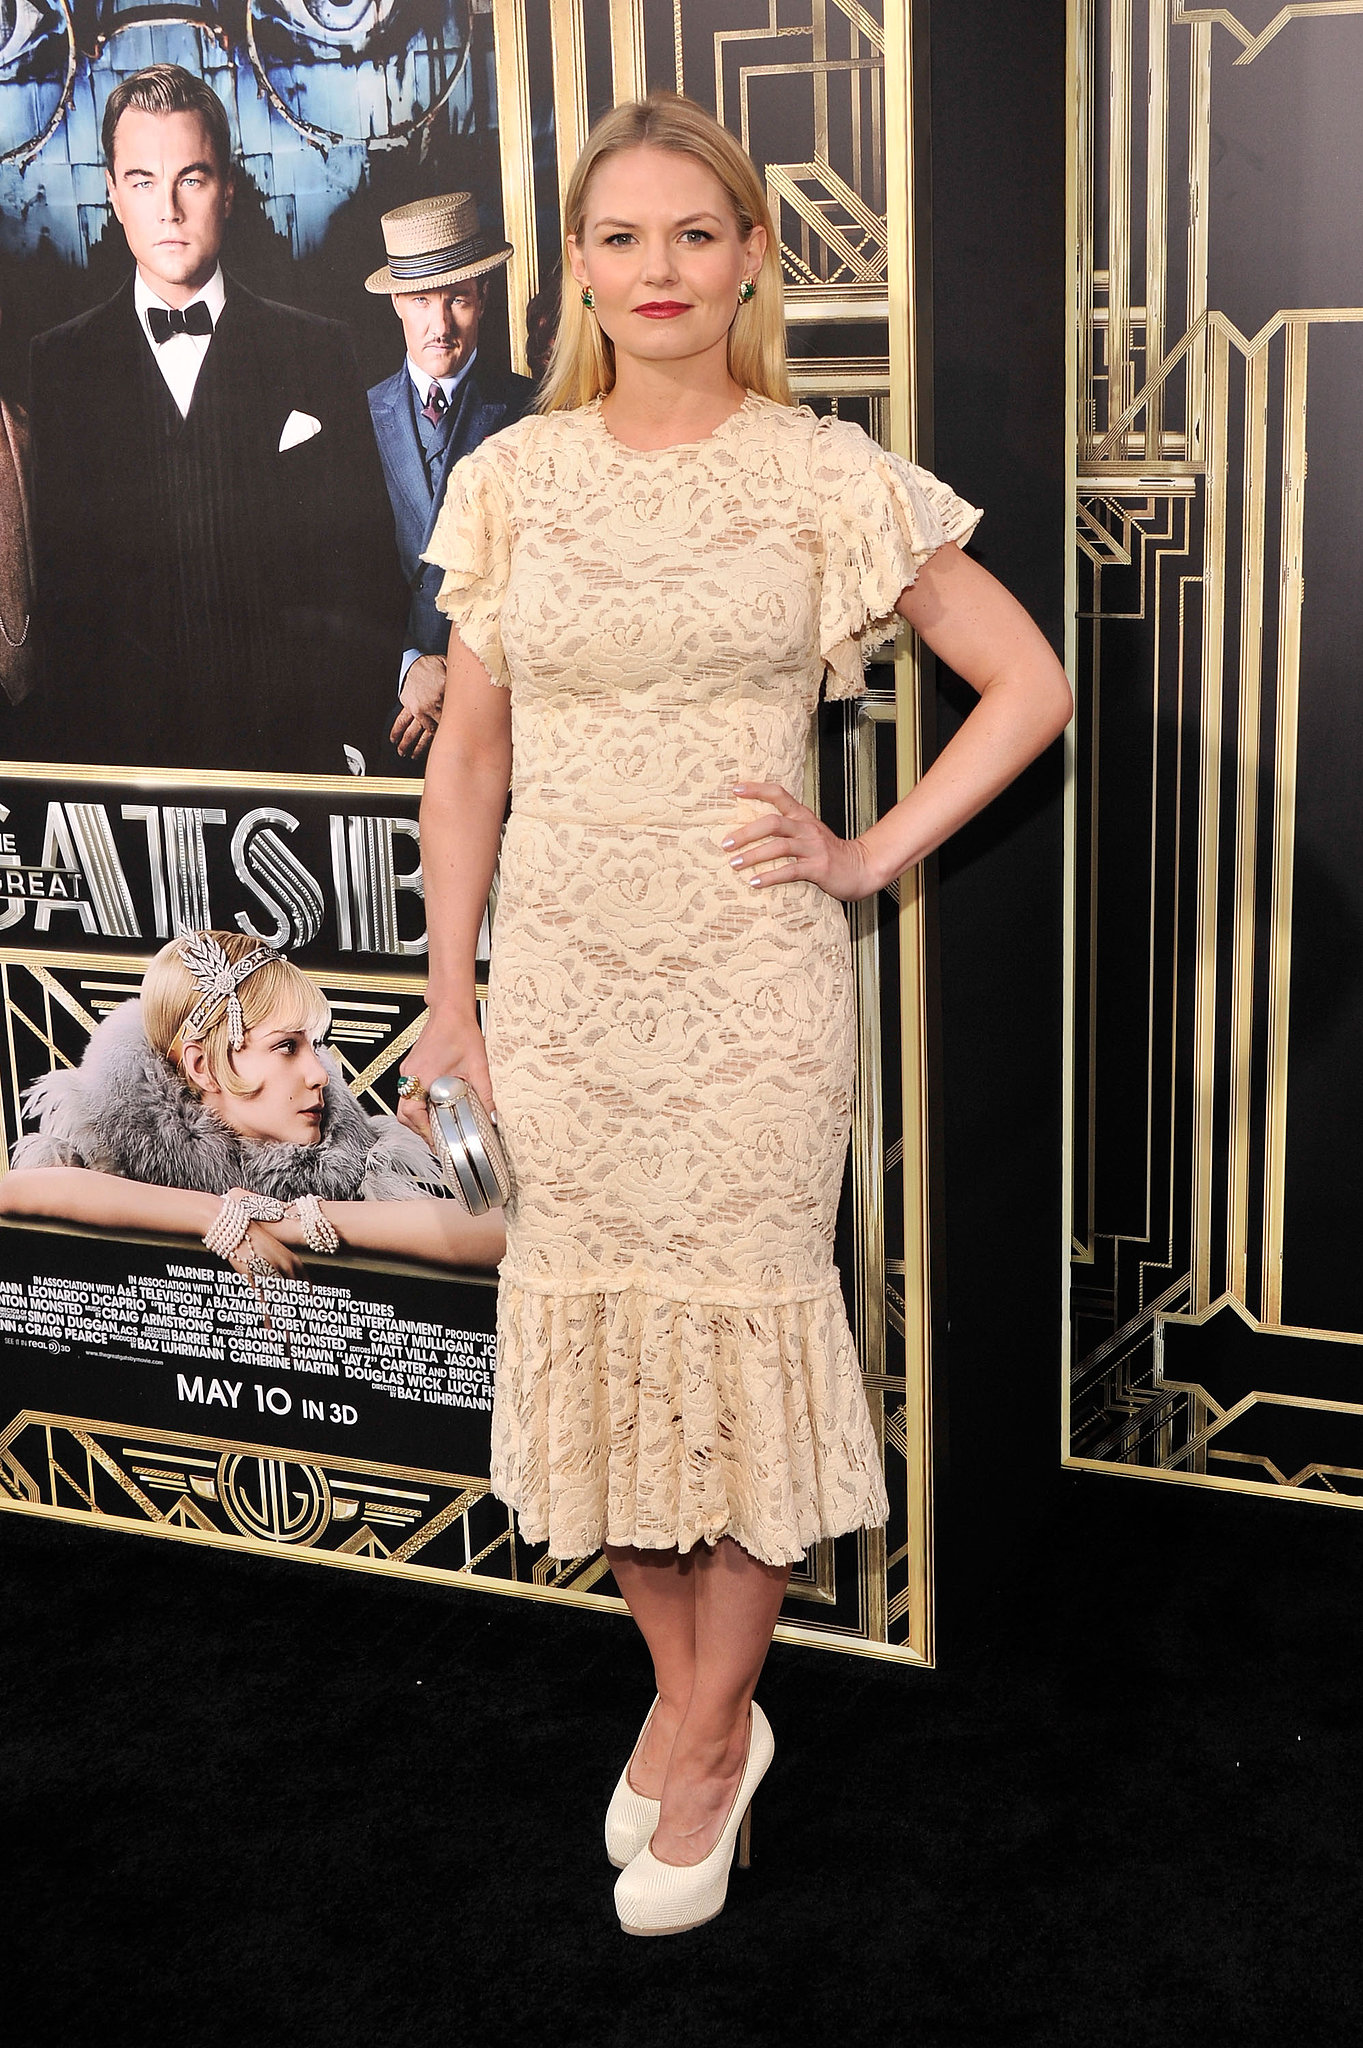 Jennifer Morrison donned a fitted off-white lace Dolce & Gabbana dress paired with Hous